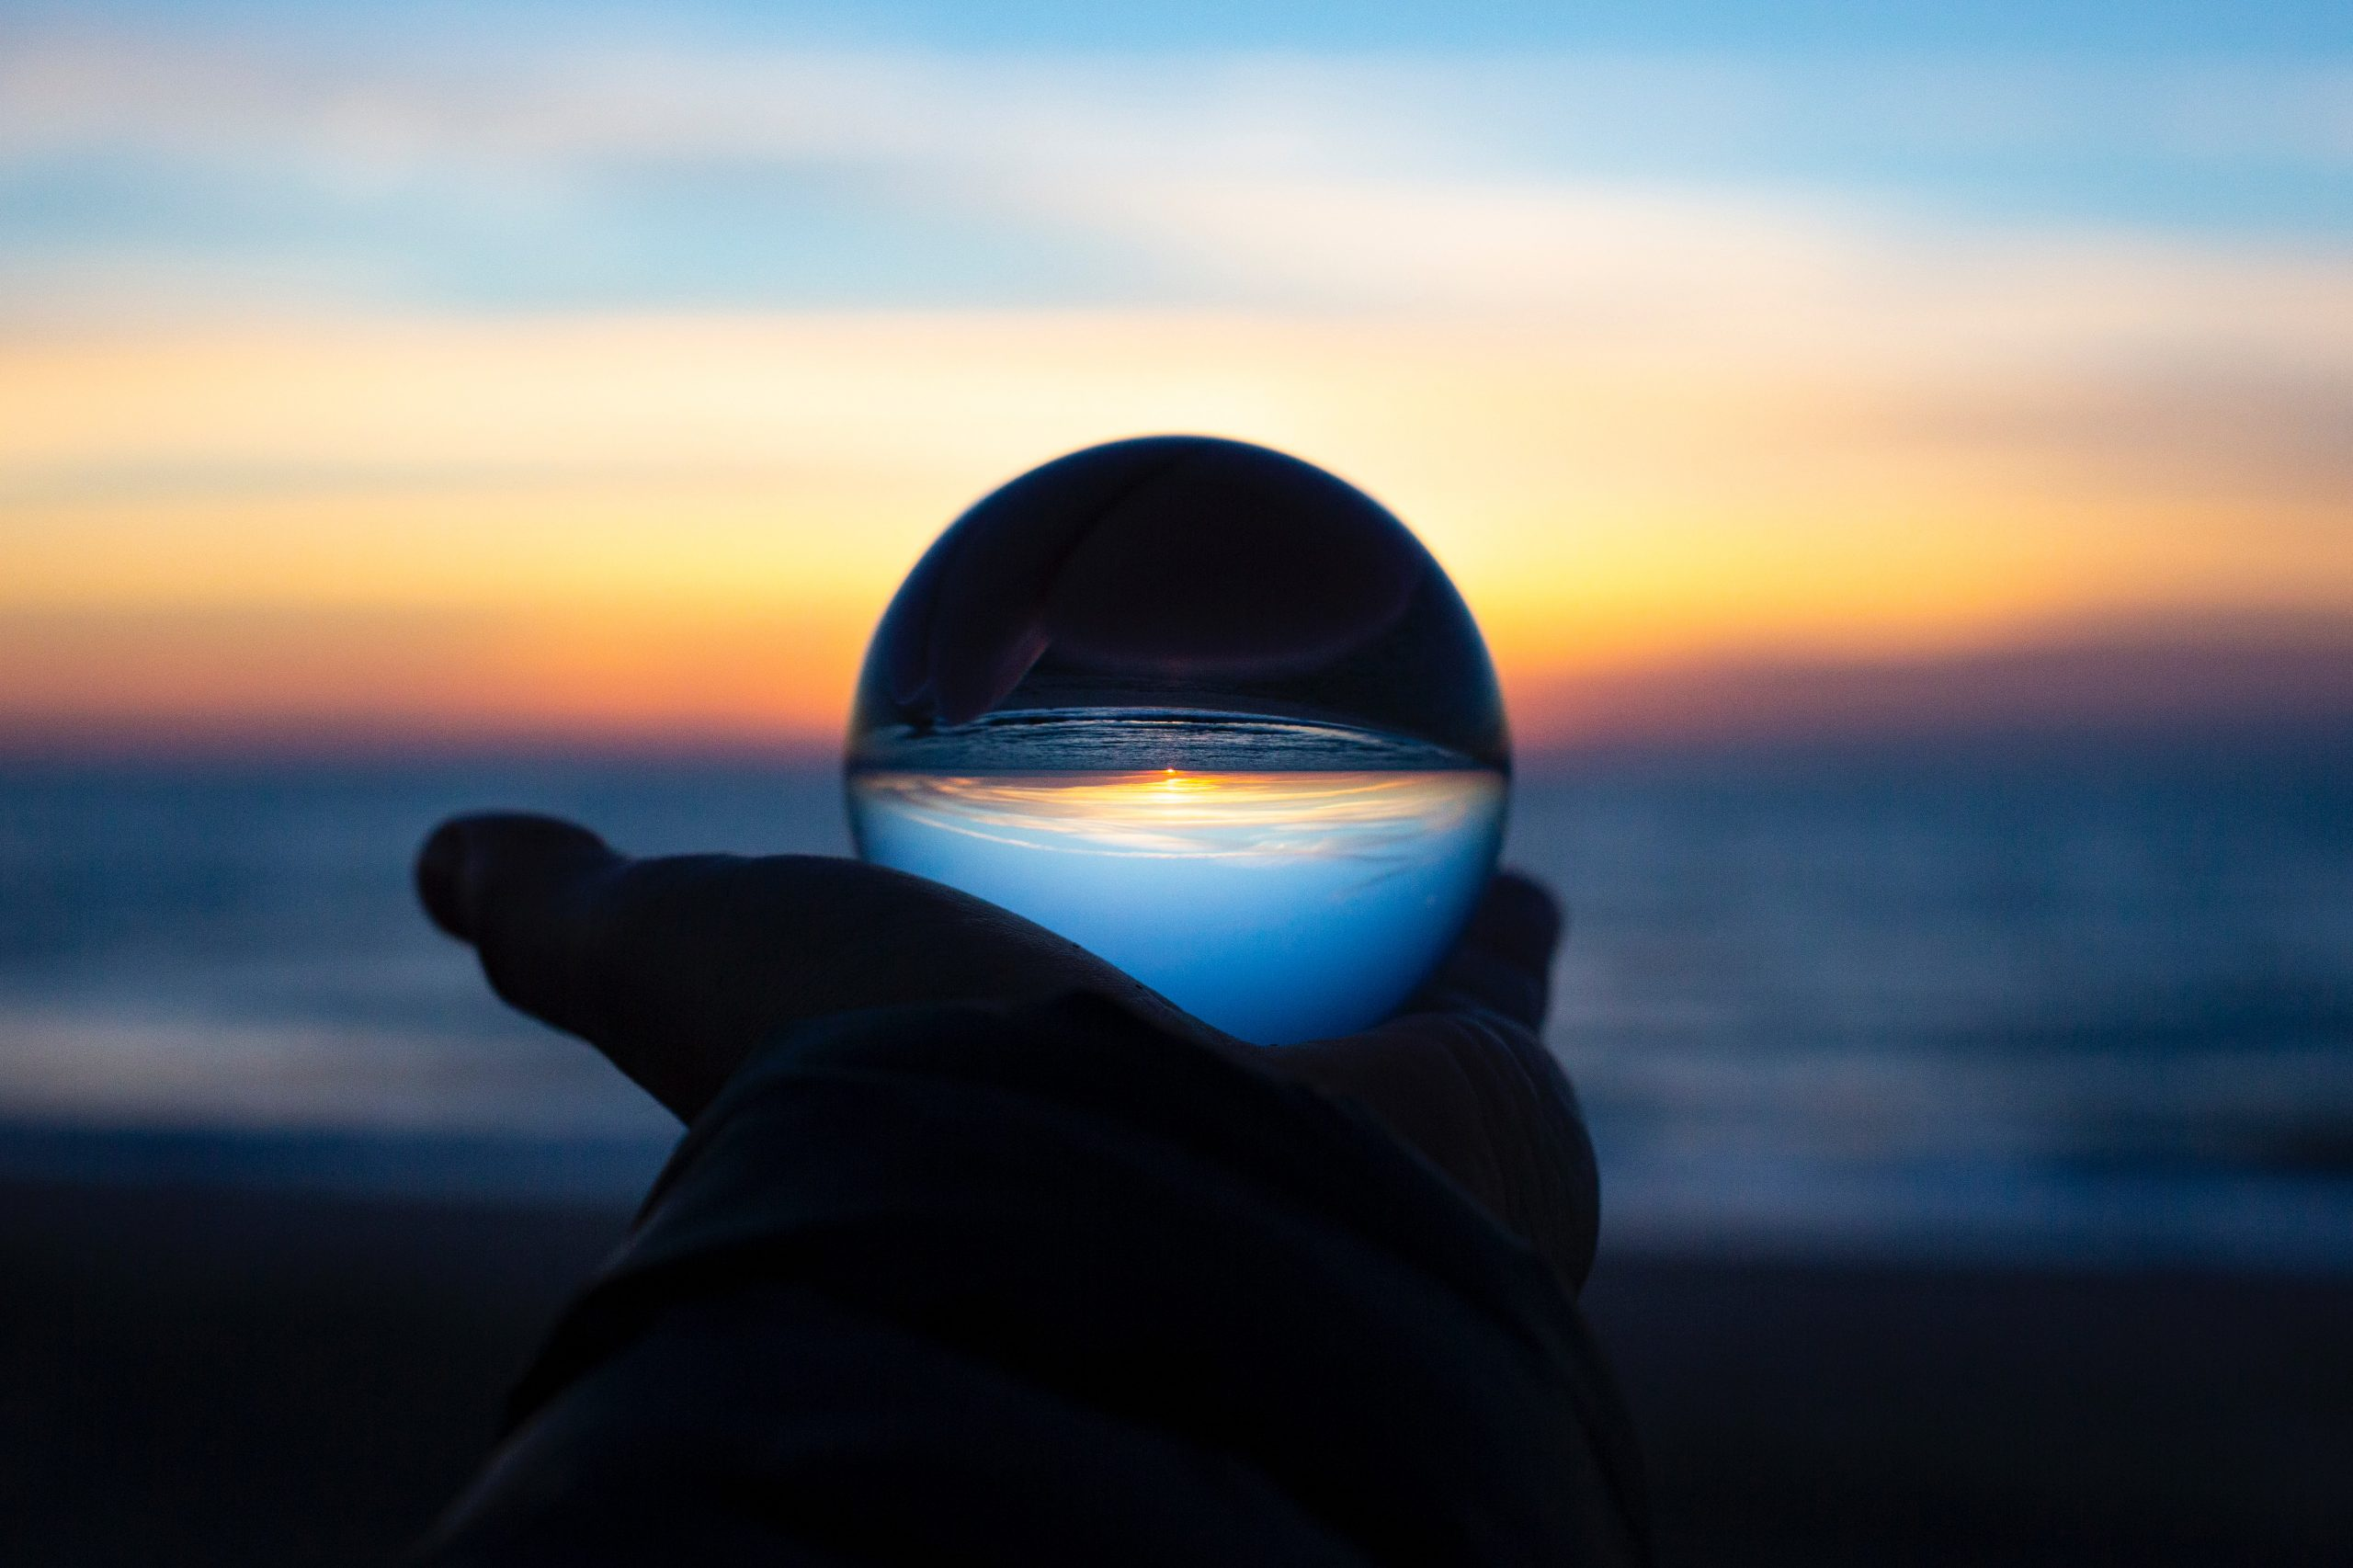 hand holding a clear glass ball in front of the sea. The sea and the sky are reflected on the ball, appearing upside down